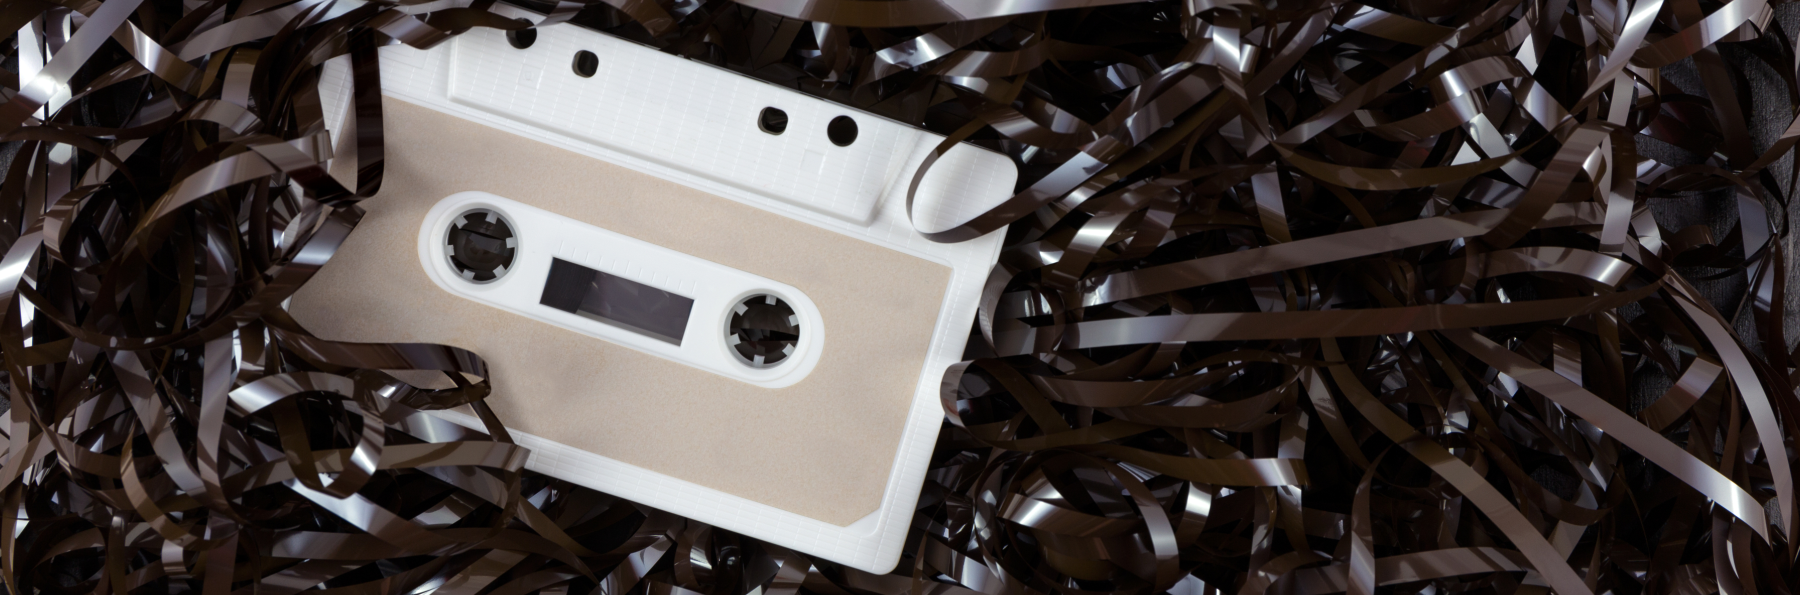 MYSTERIES OF LIFE: Don't Throw Out Those Old Cassettes Quite Yet